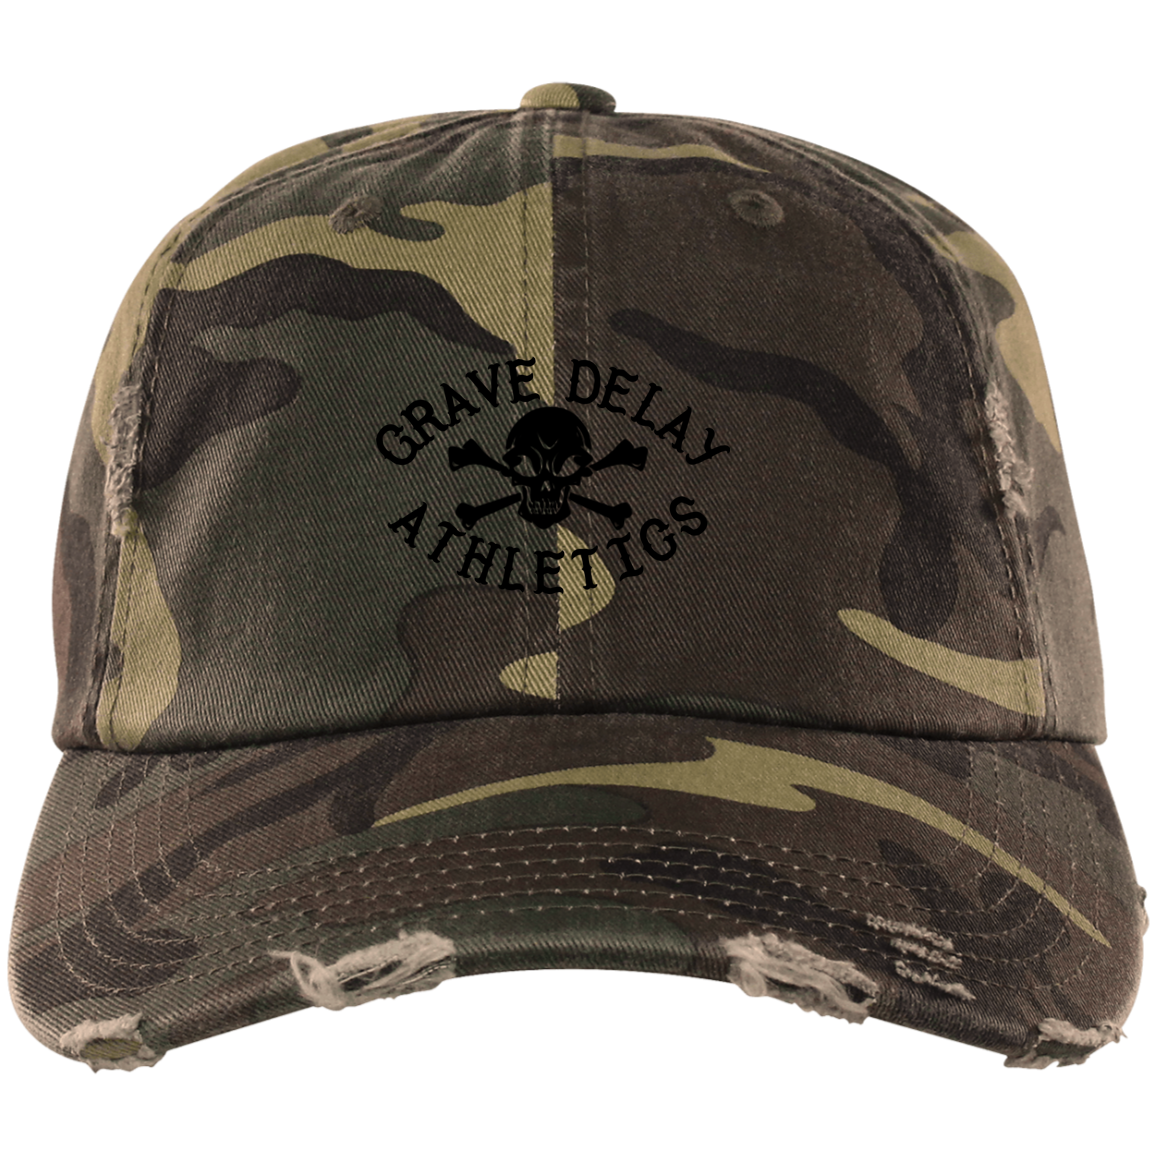 GDA Skull and Cross Bones Distressed Camo Cap